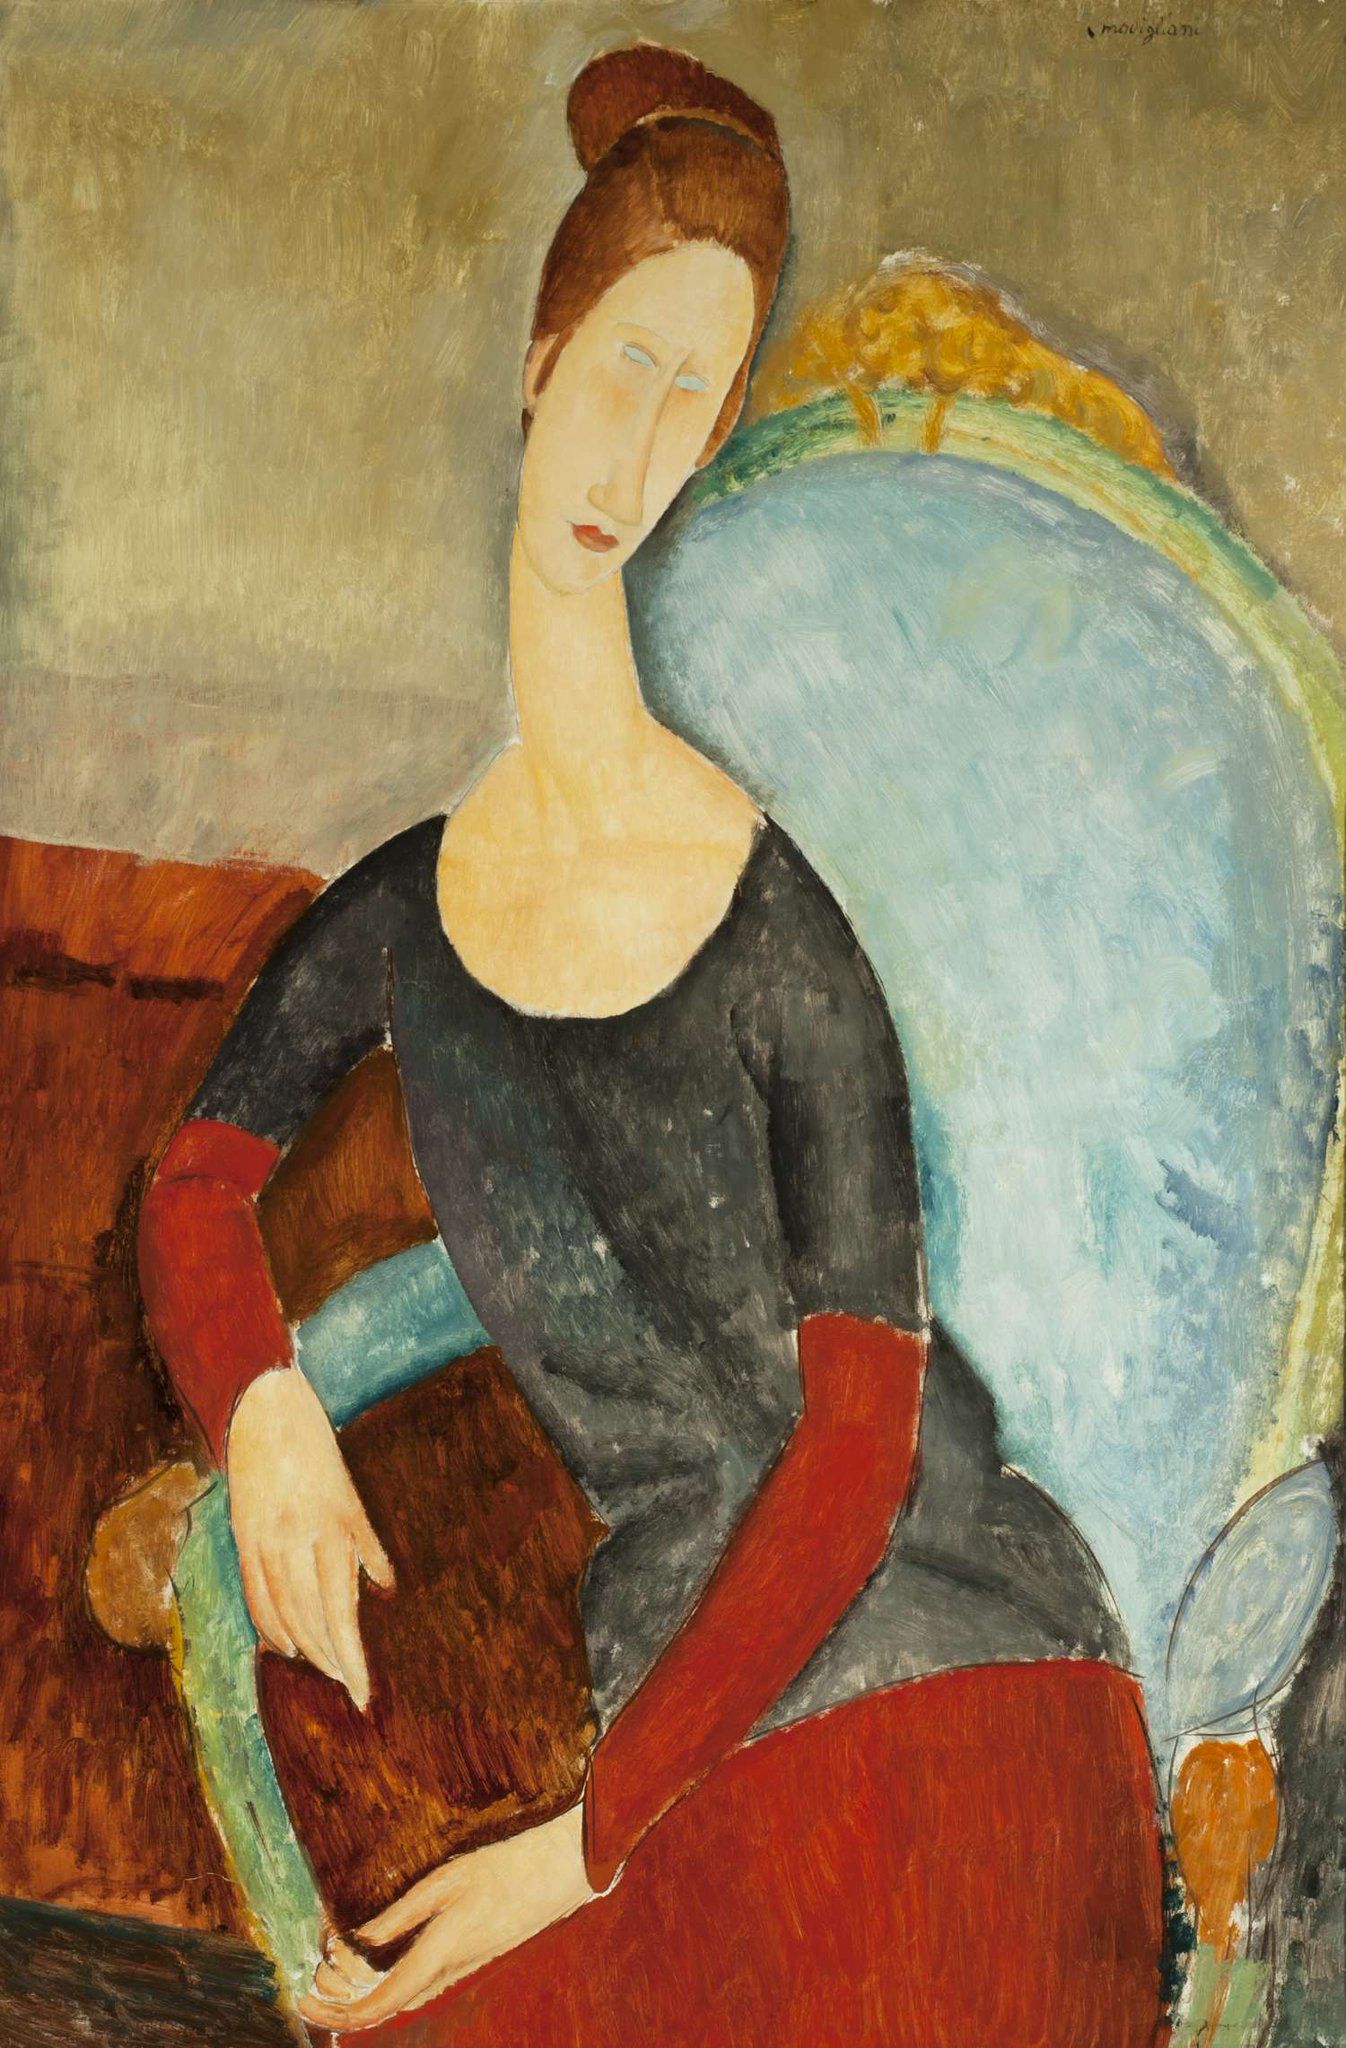 """Tate on Twitter: """"'When I know your soul, I will paint your eyes' - Amedeo  #Modigliani See the artist's iconic portraits at Tate Modern until 2 Apr  2018. Amedeo Modigliani, Jeanne Hébuterne"""